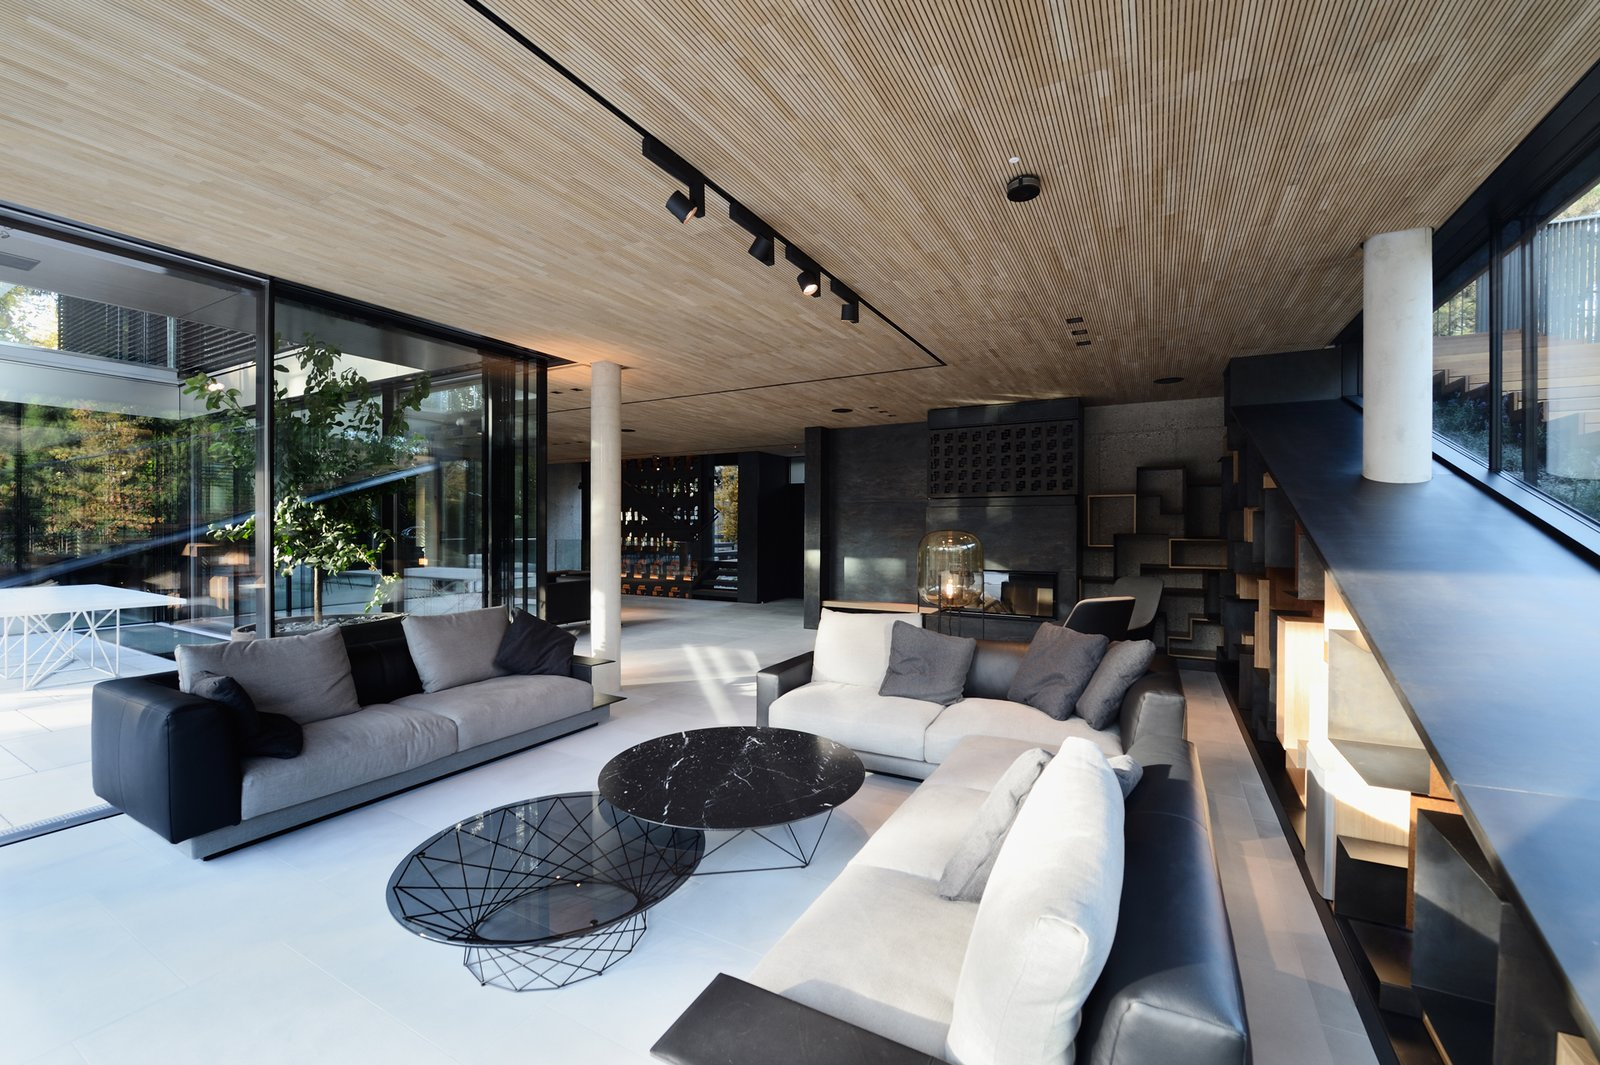 Living room with the fireplace  33 by Architect Zoran Bodrozic